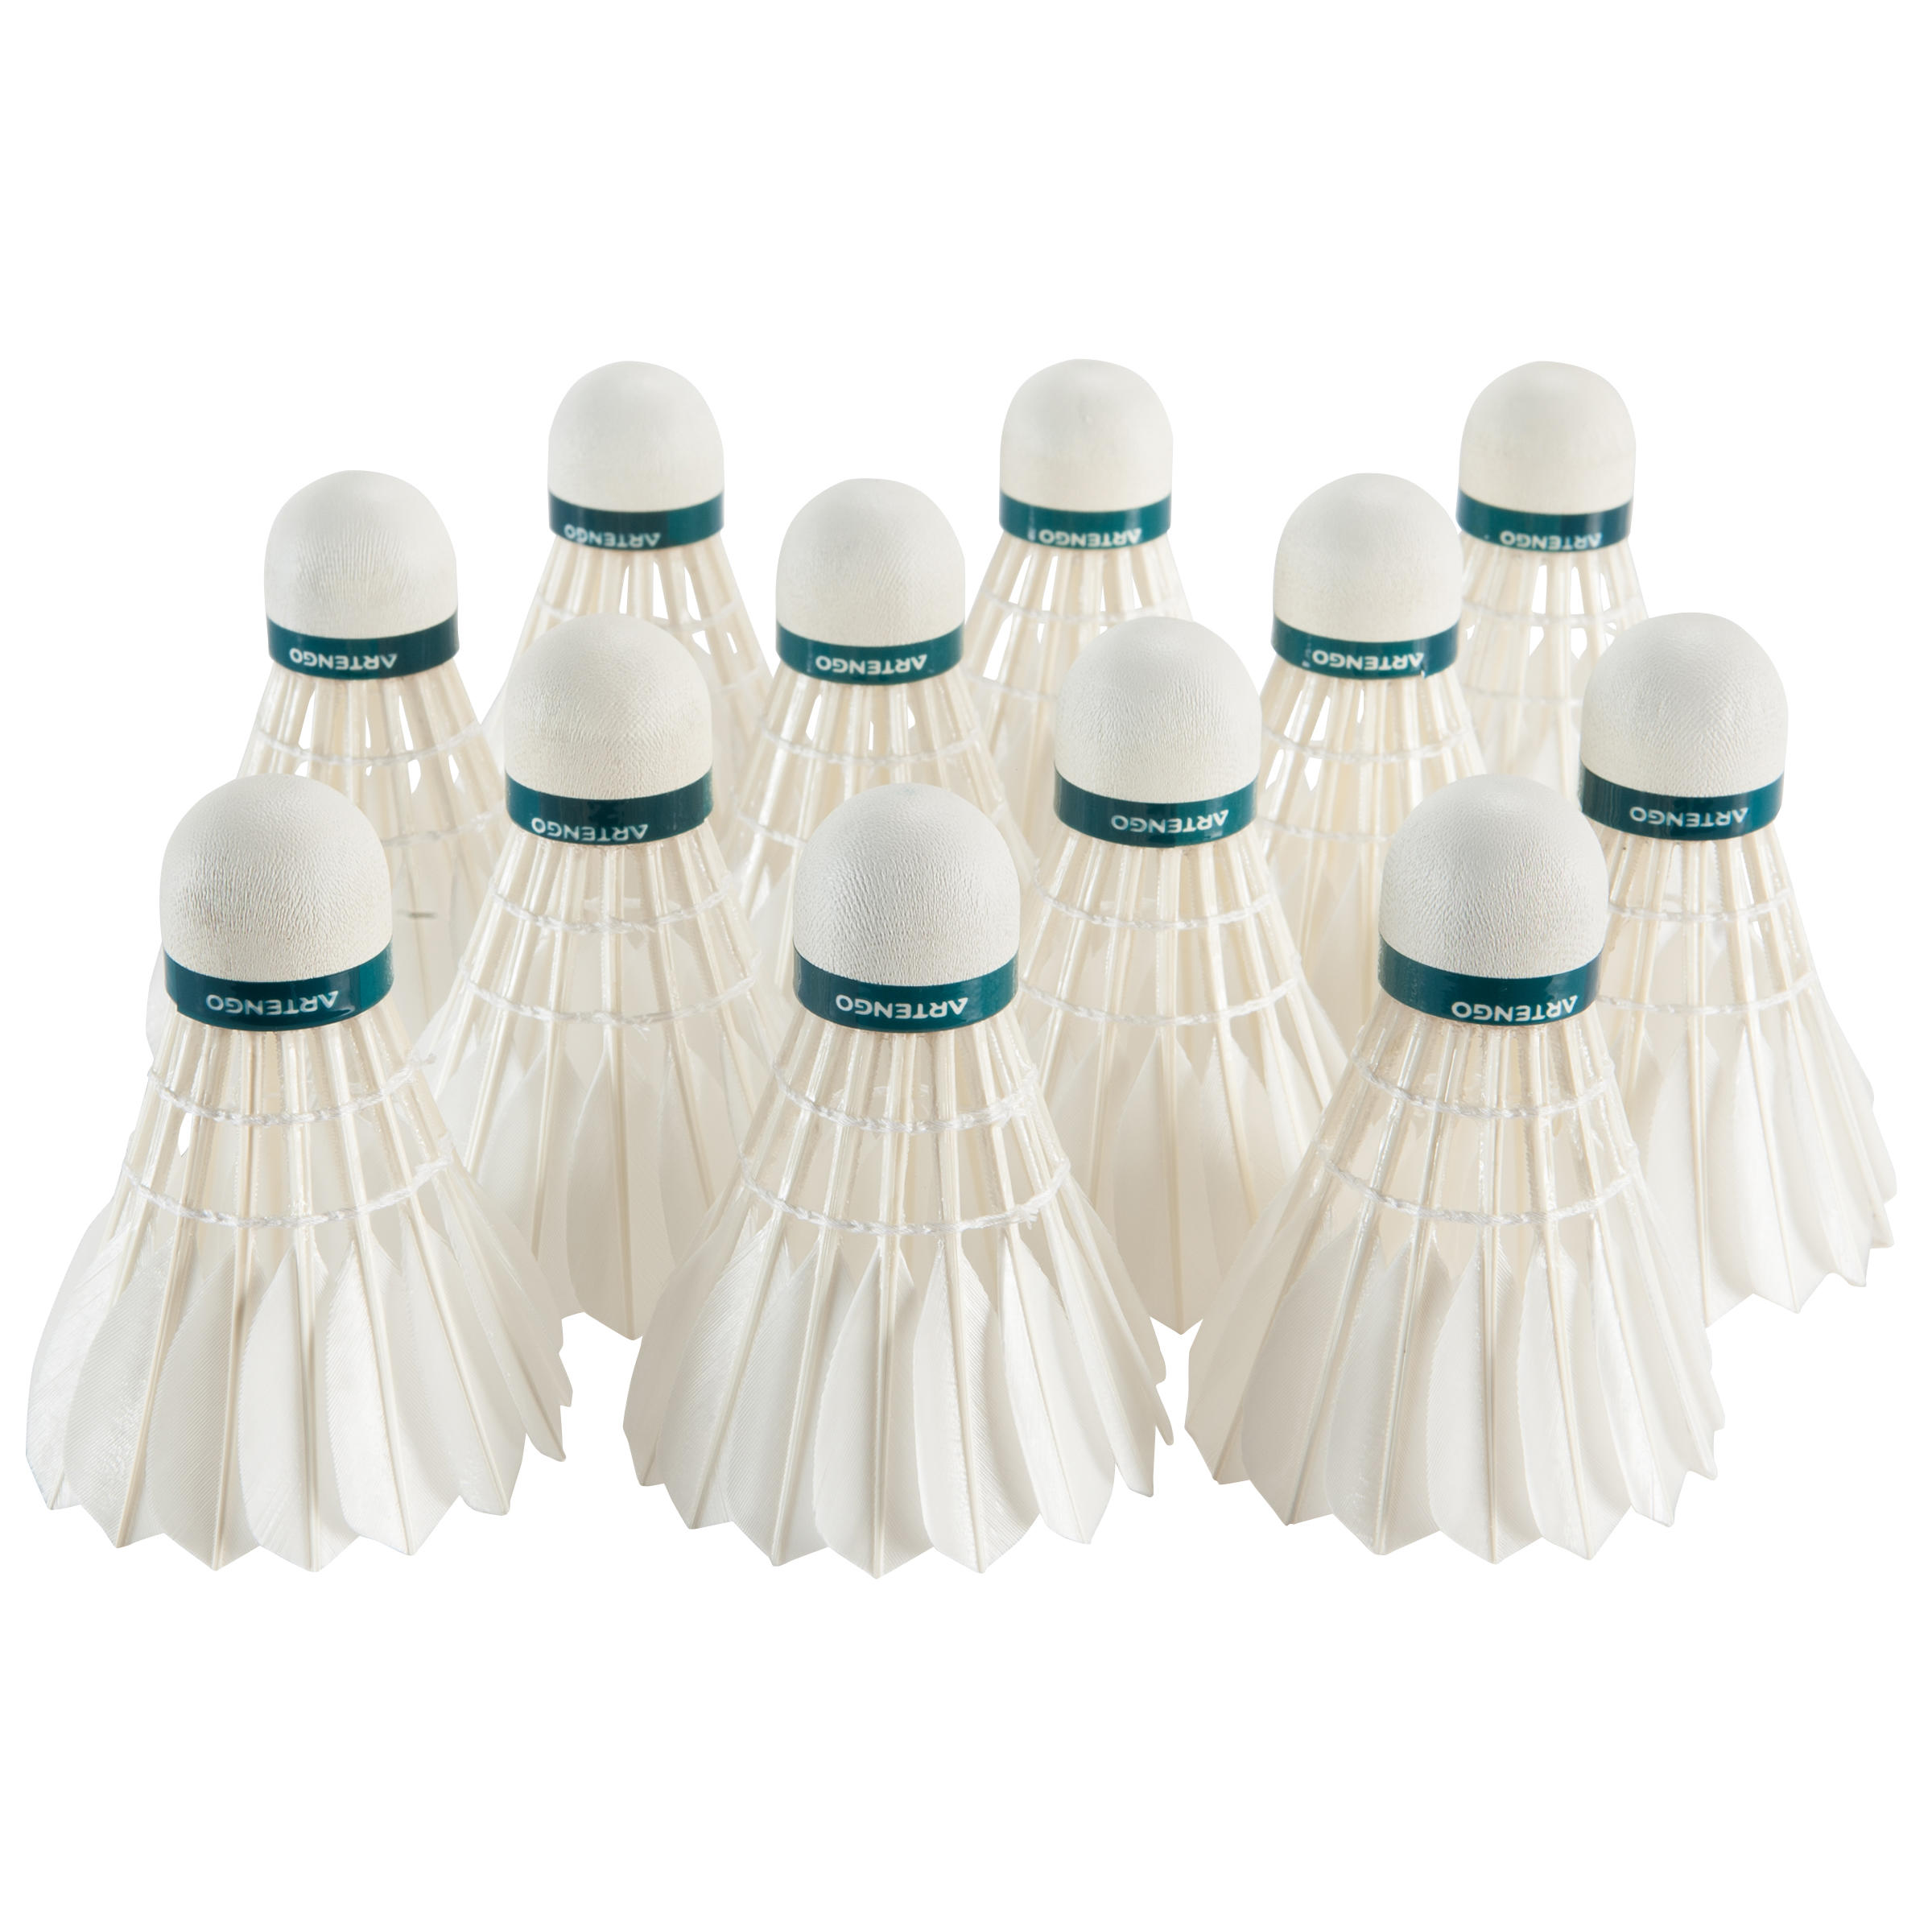 BADMINTON SHUTTLECOCK BSC950 12-PACK-GOOSE FEATHER - SPEED77